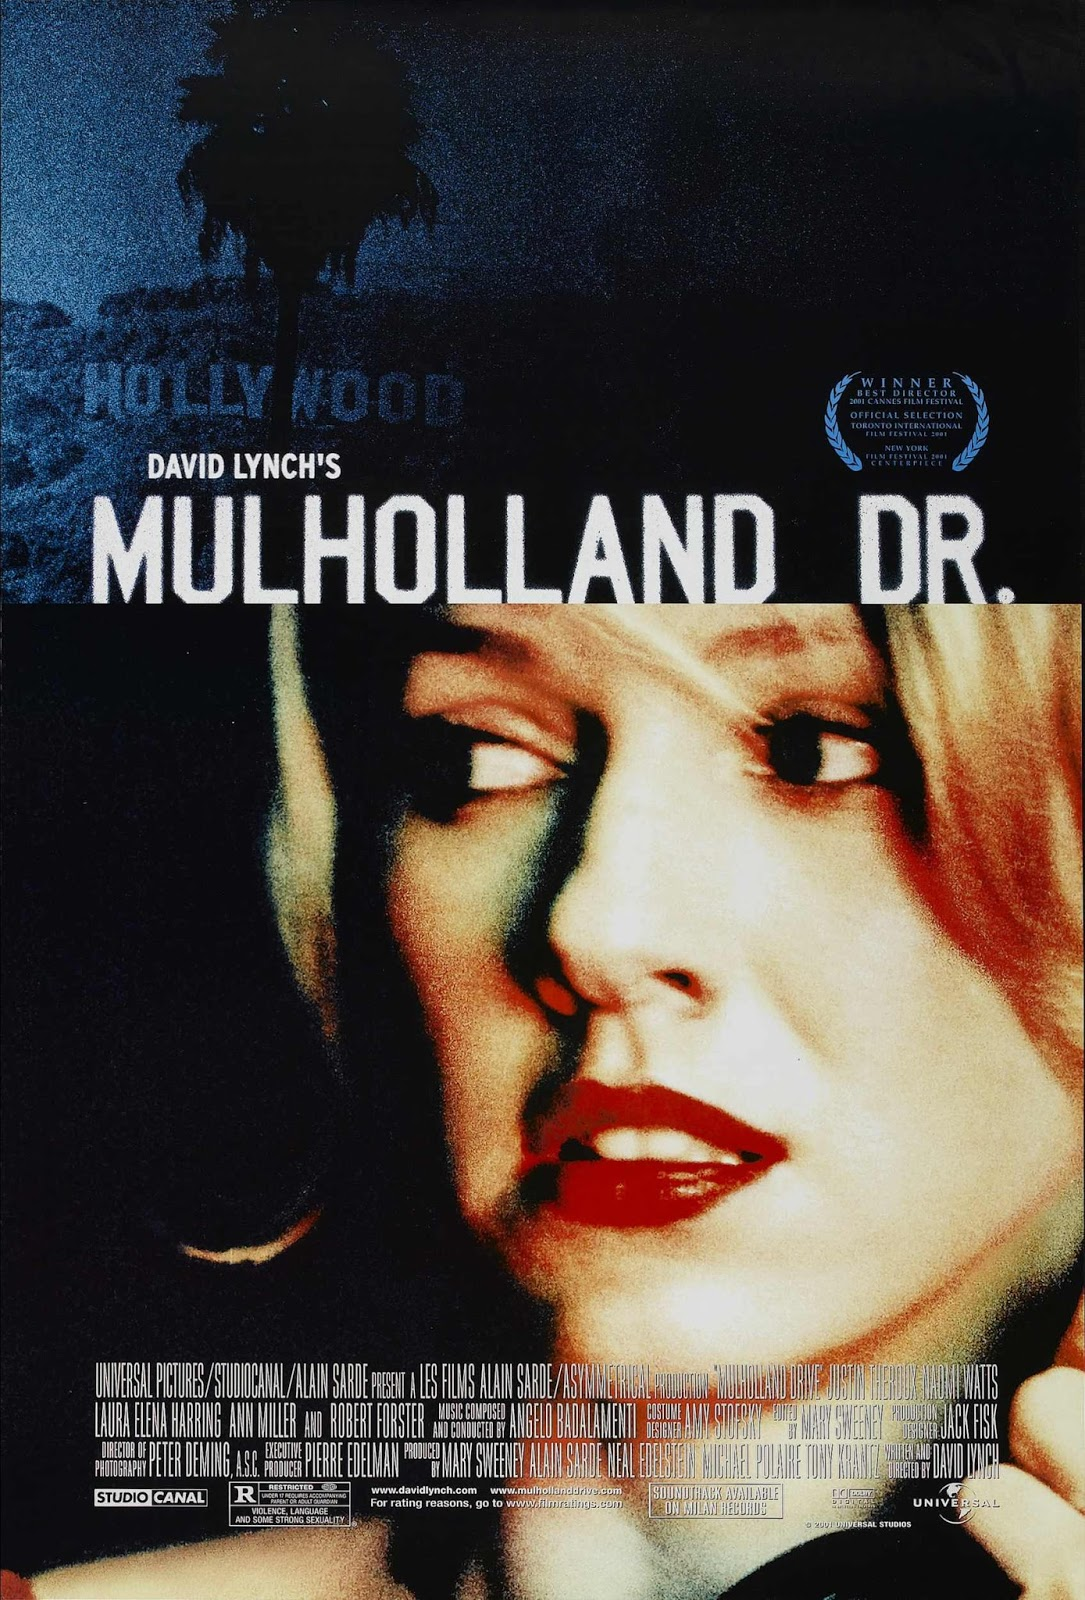 The theatrical release poster for Mulholland Drive. It is divided into two panels. The top panel shows a darkened photograph of the Hollywood Sign obscured by a palm tree. The bottom panel depicts Laura Harring looking nervously to her right.